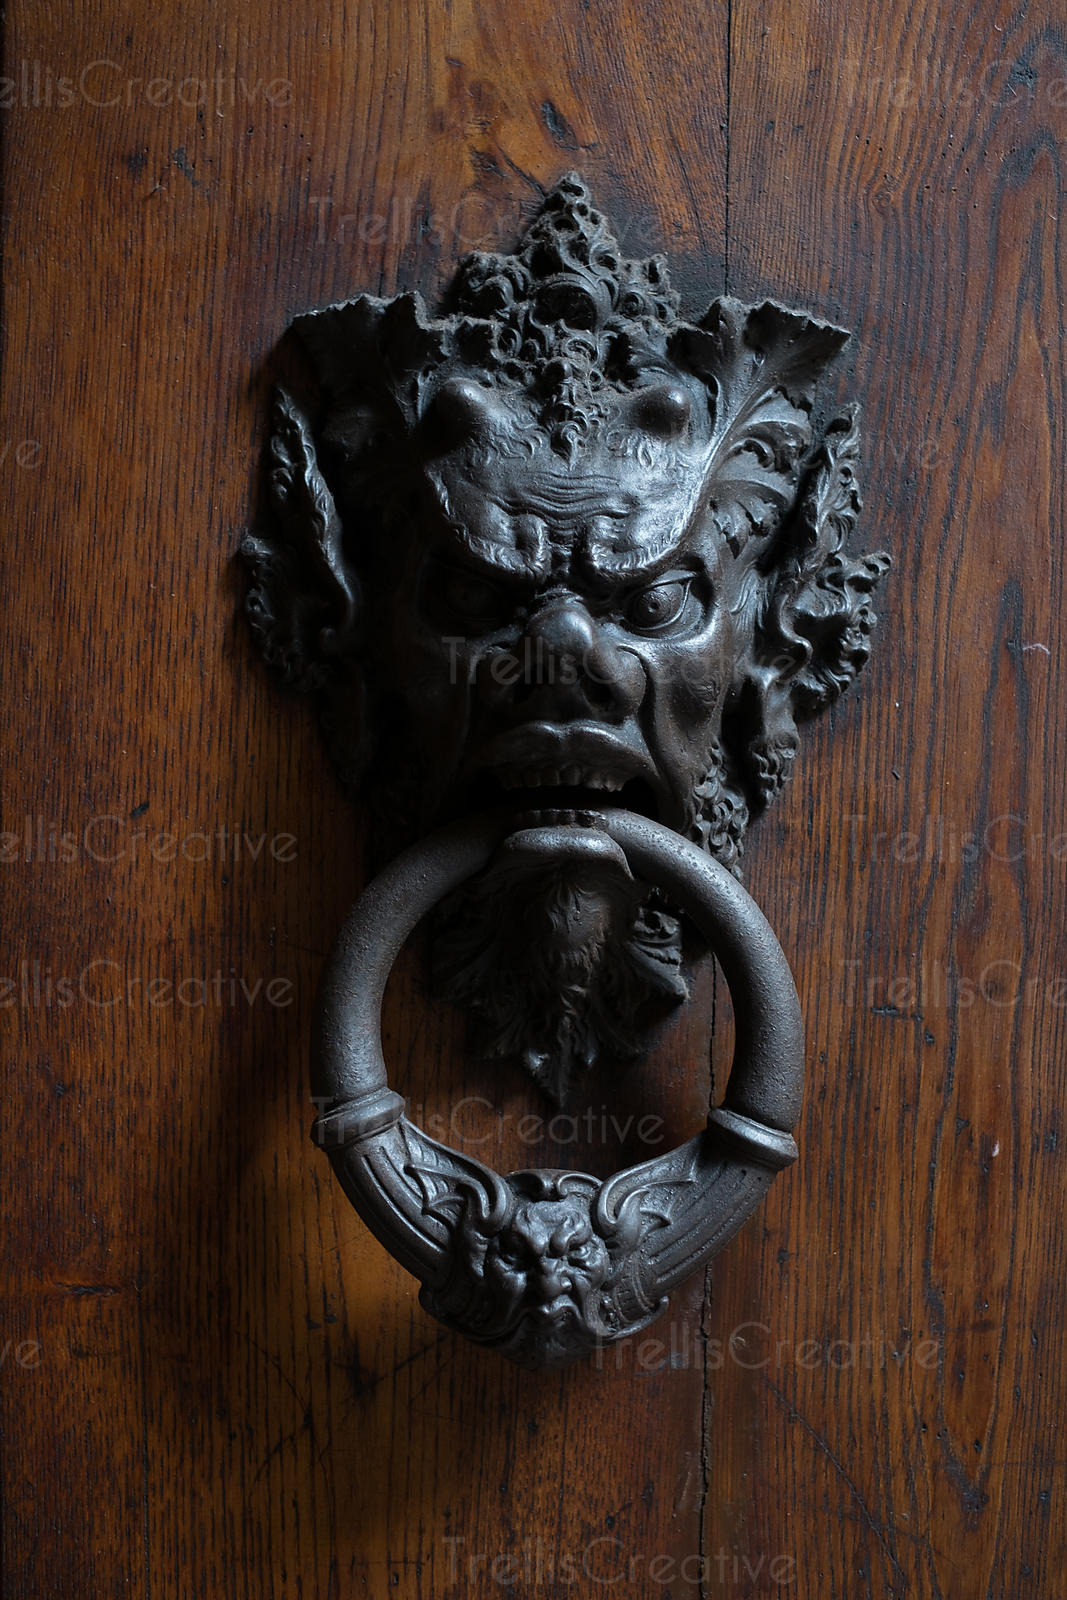 Medievial door knockers in Volterra, Italy